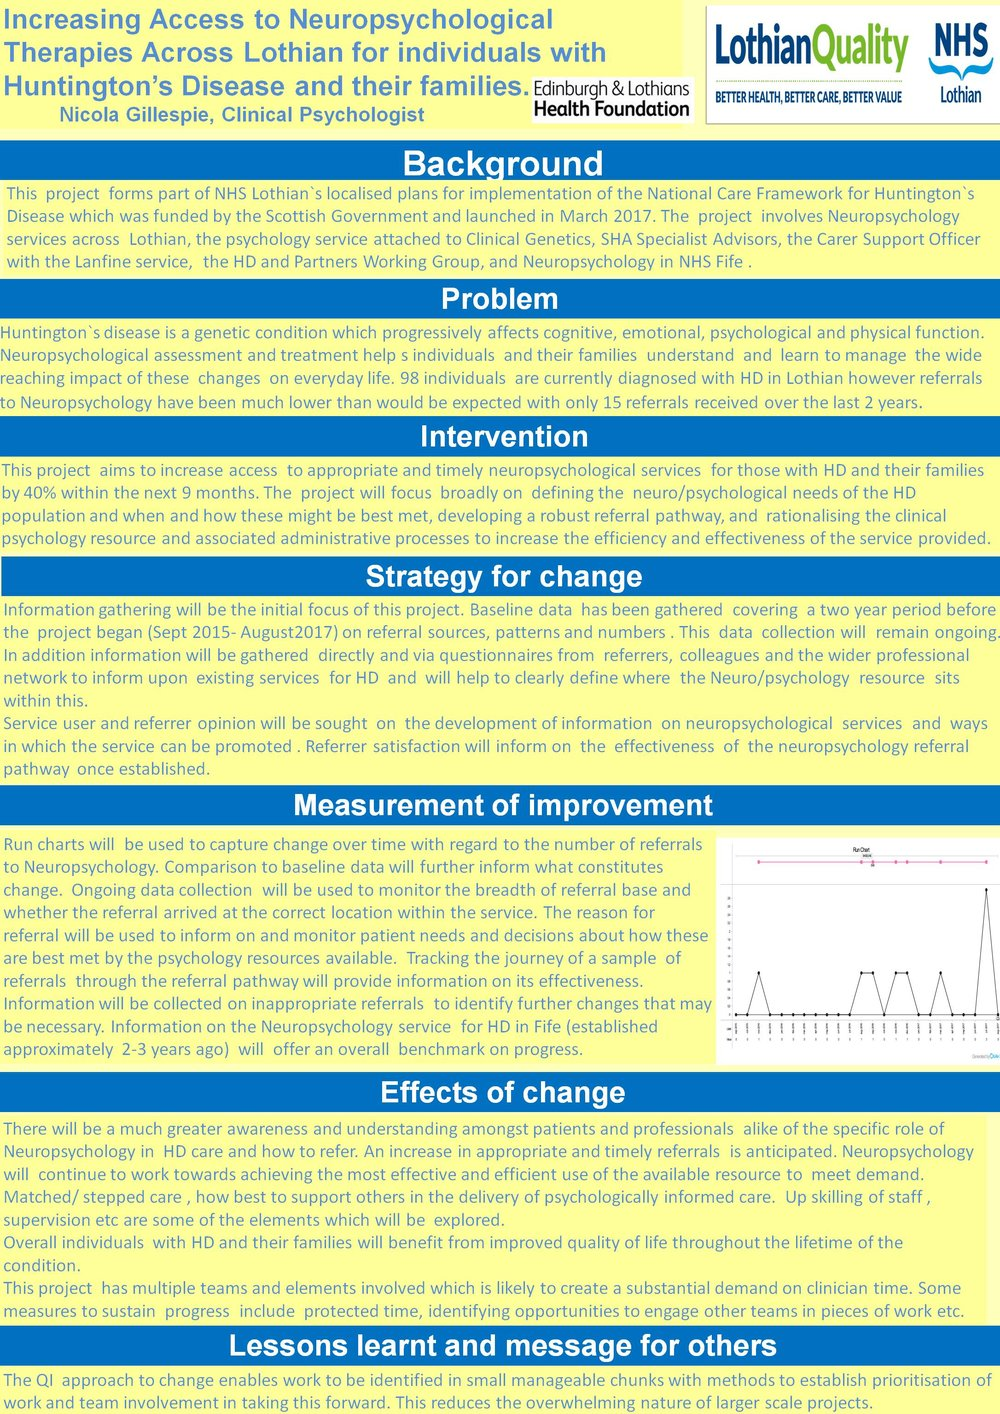 10-Nicola-Poster-presentation-final-QI-HD-Project-Nov-2017.jpg